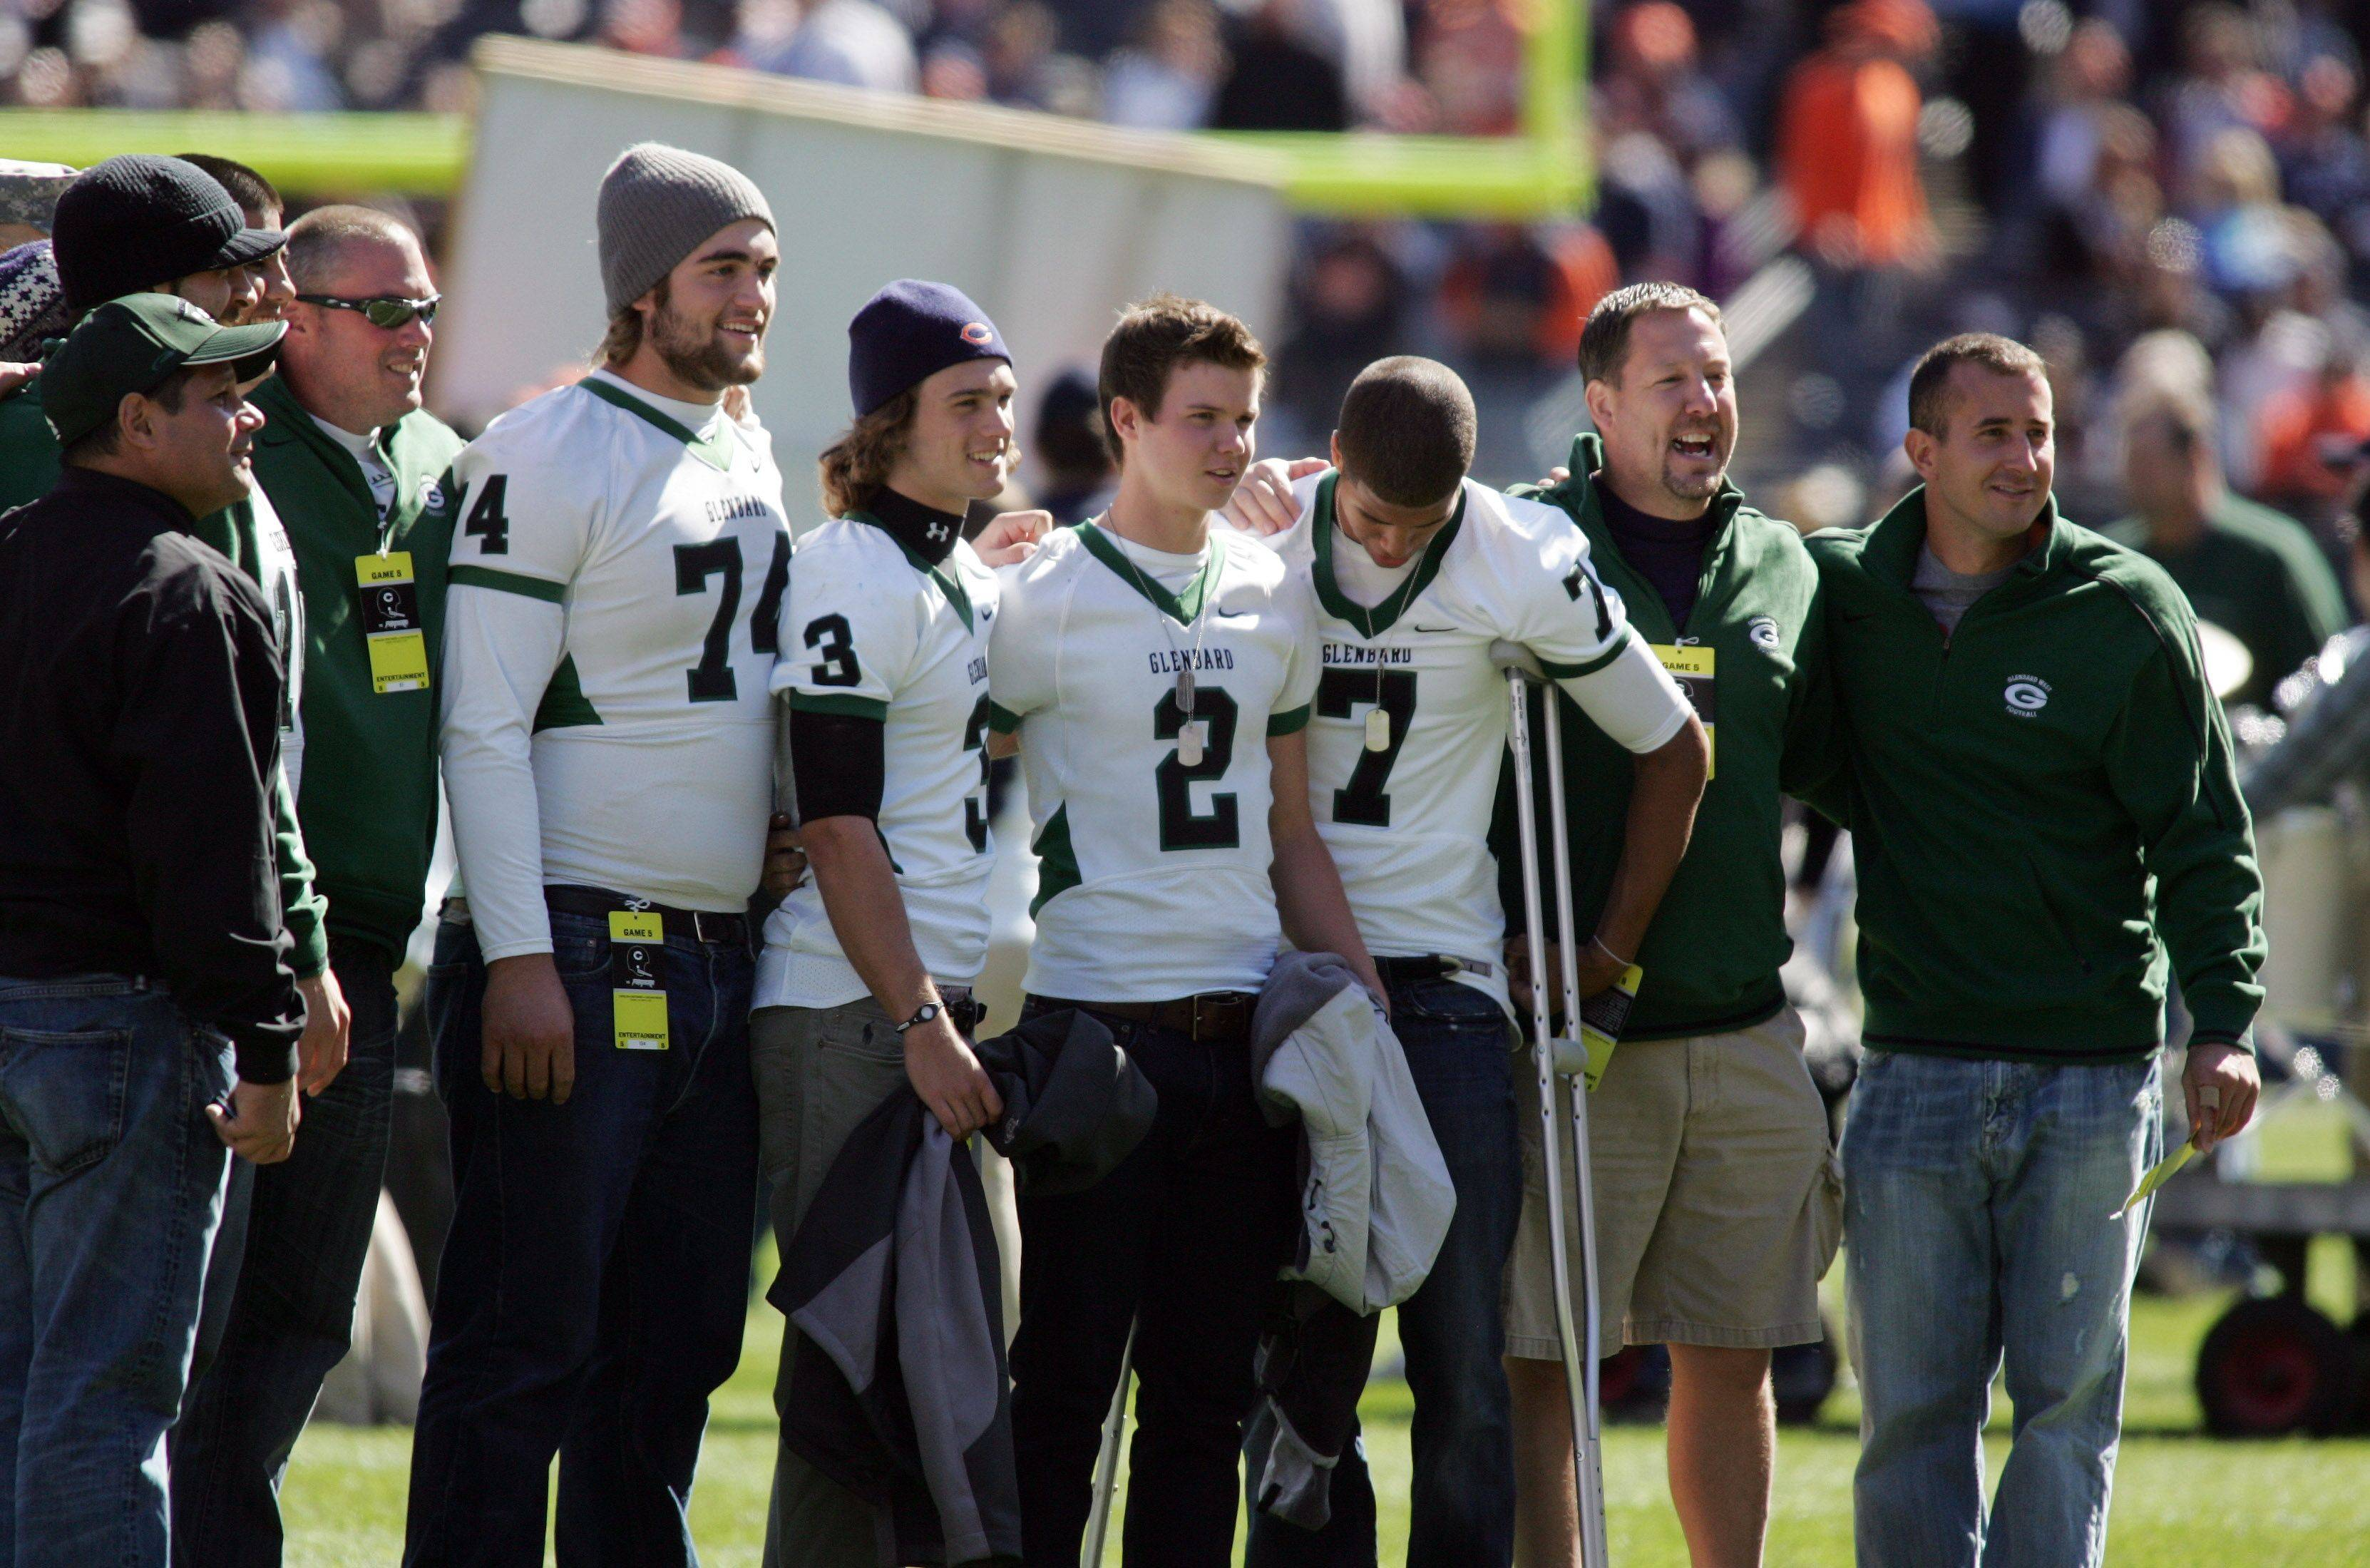 The Glenbard West Hilltoppers honored at the Chicago Bears vs. Carolina Panthers game at Soldier Field.